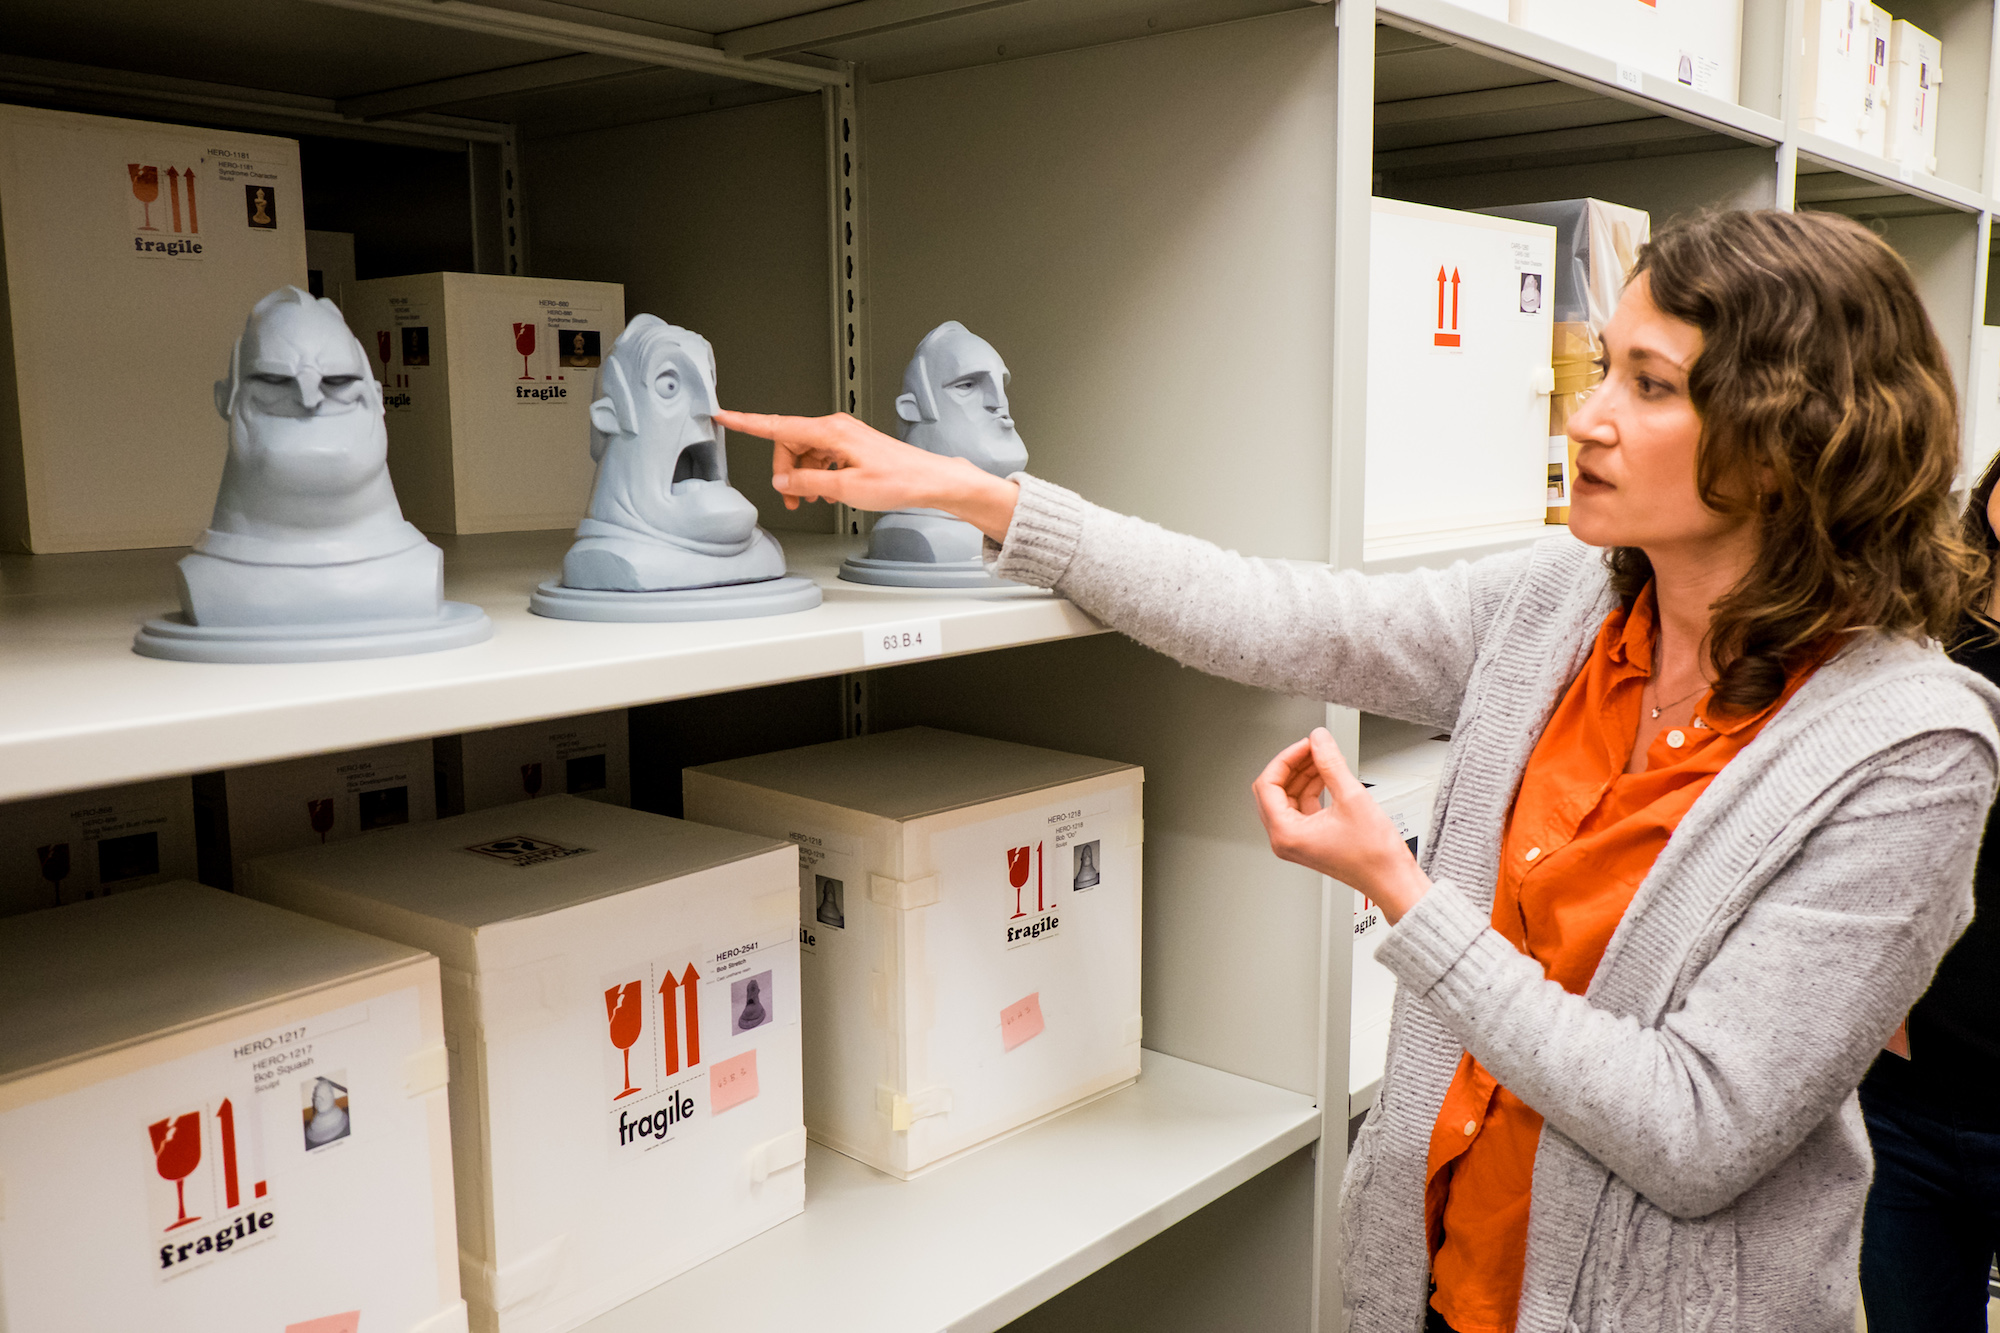 Learning from Manager of Pixar Archives